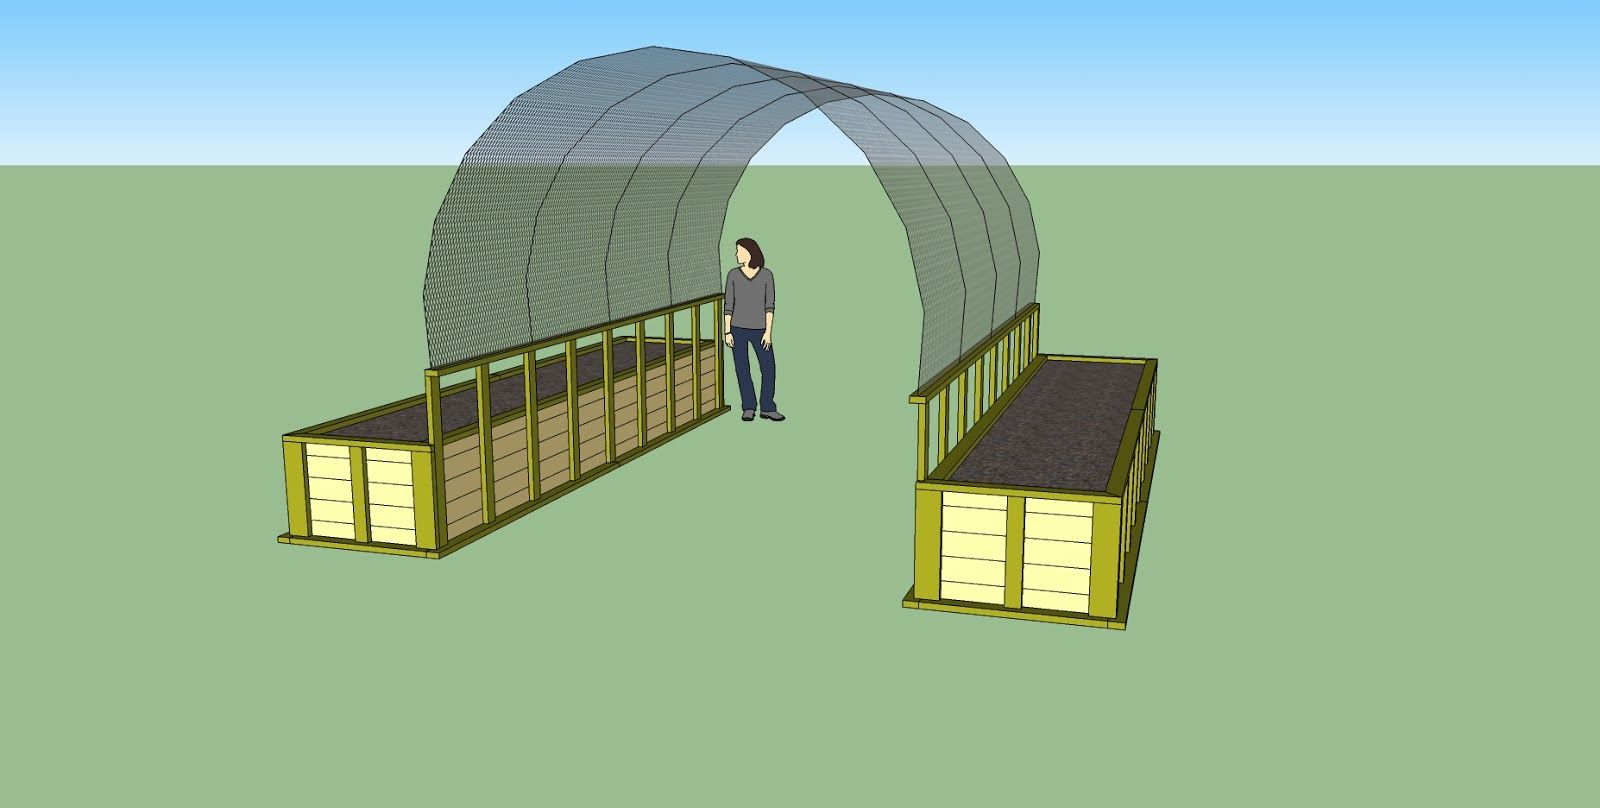 Small Crop Of Cattle Panel Greenhouse